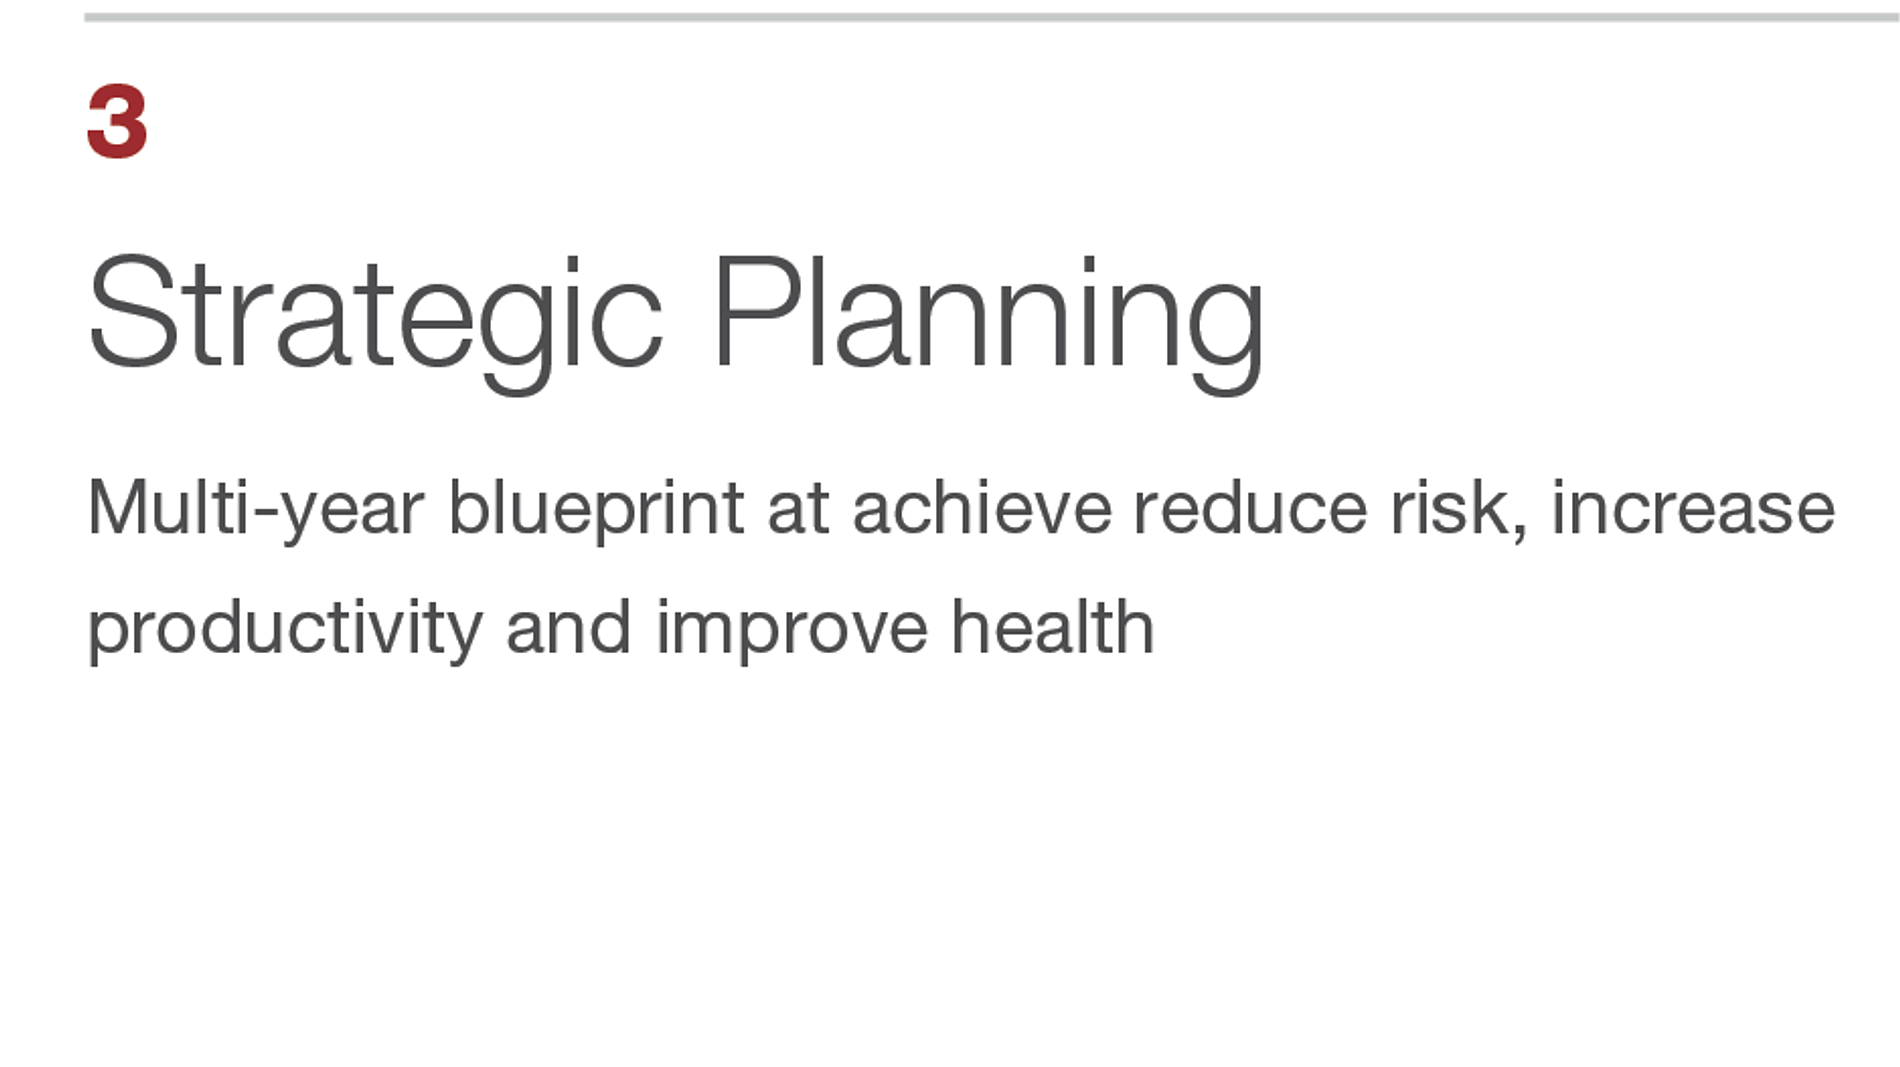 Strategic Planning. Multi-year blueprint at achieve reduce risk, increase productivity and improve health